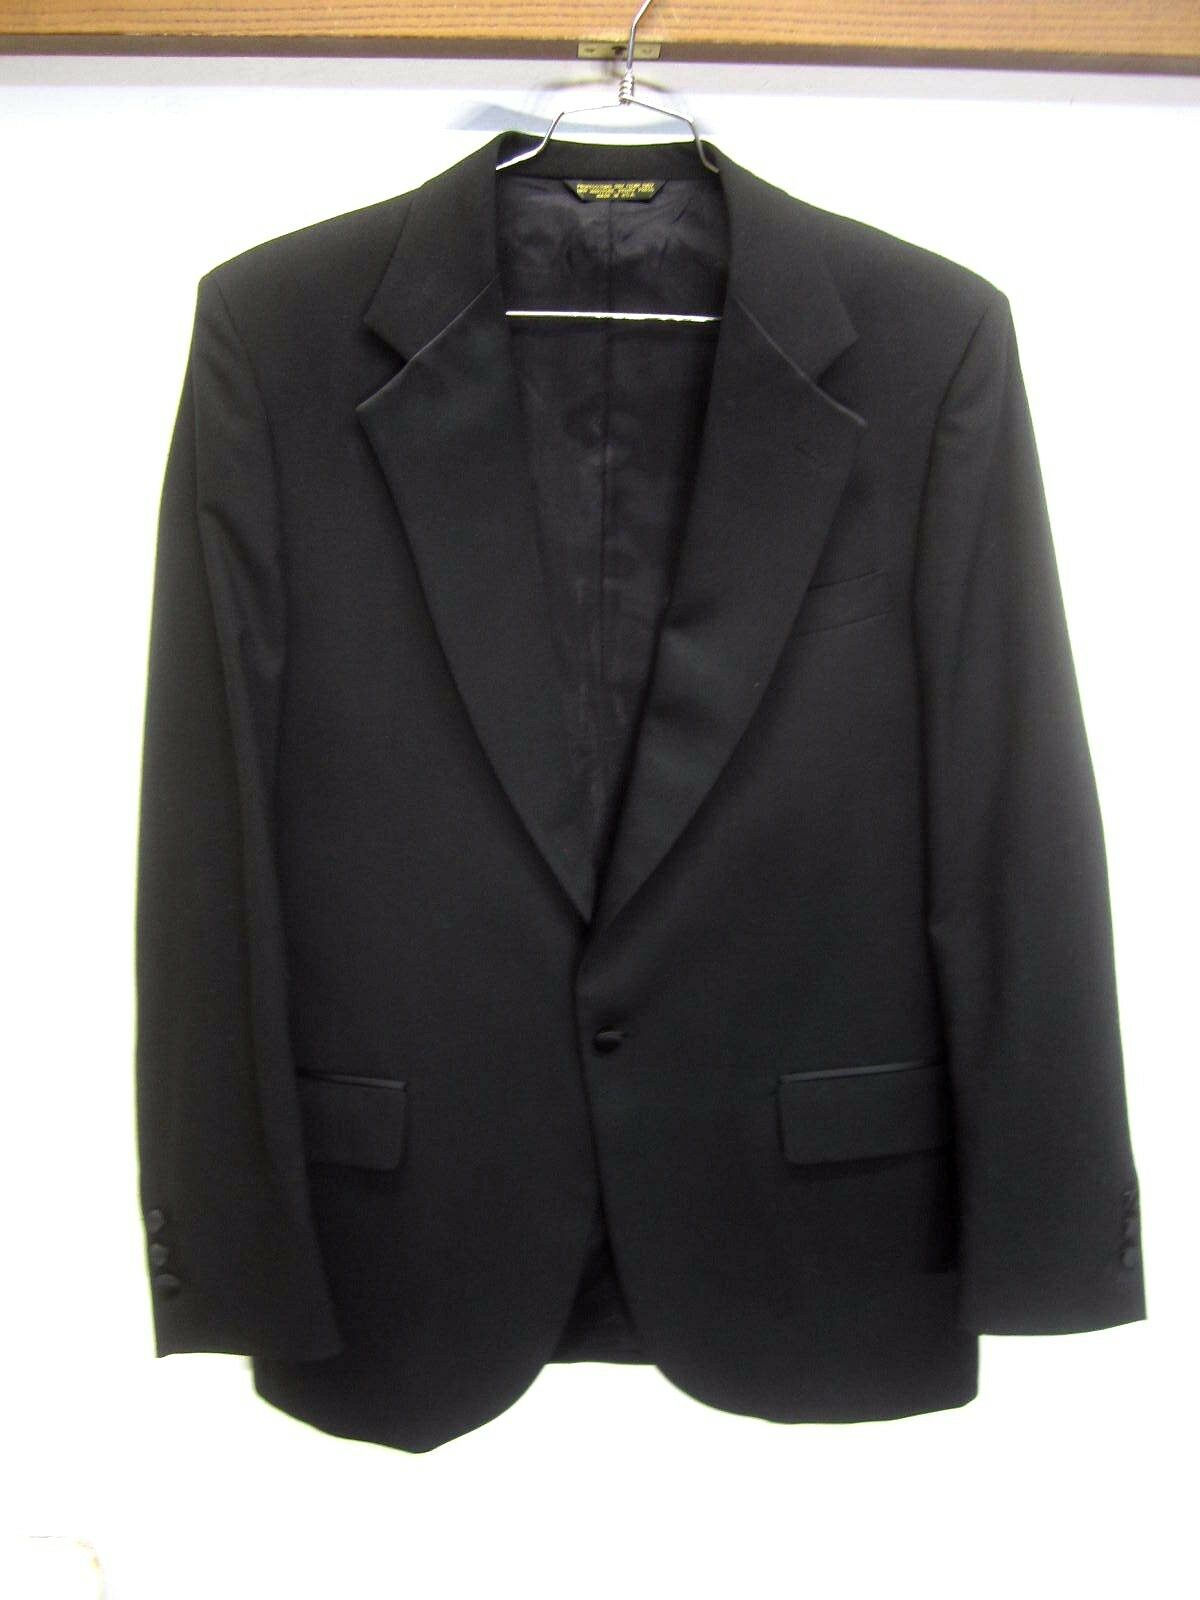 Vtg Stafford Tuxedo Blazer Sport Coat one-button satin lapels sz 43L made in USA